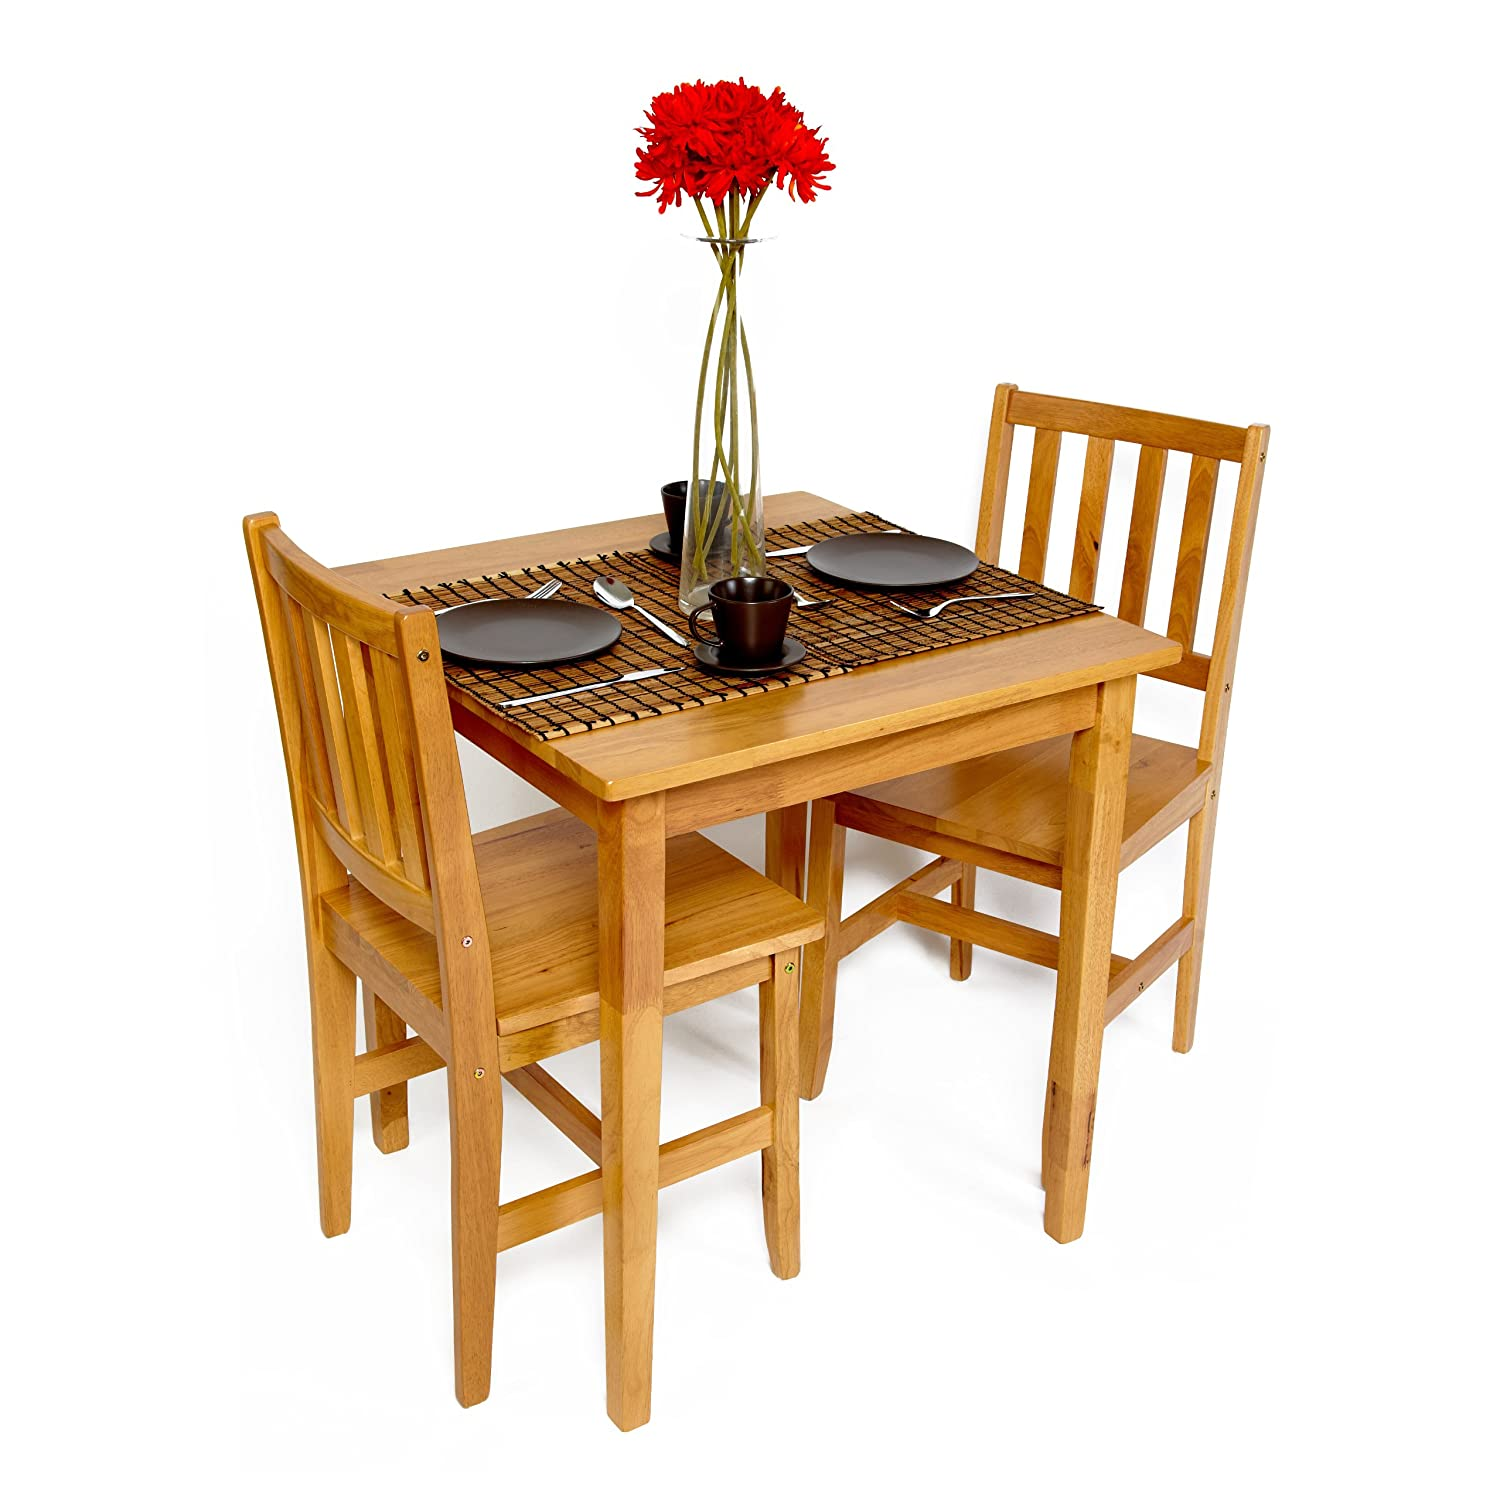 Table and chairs set dining bistro small cafe tables wood for Small wood dining table and chairs